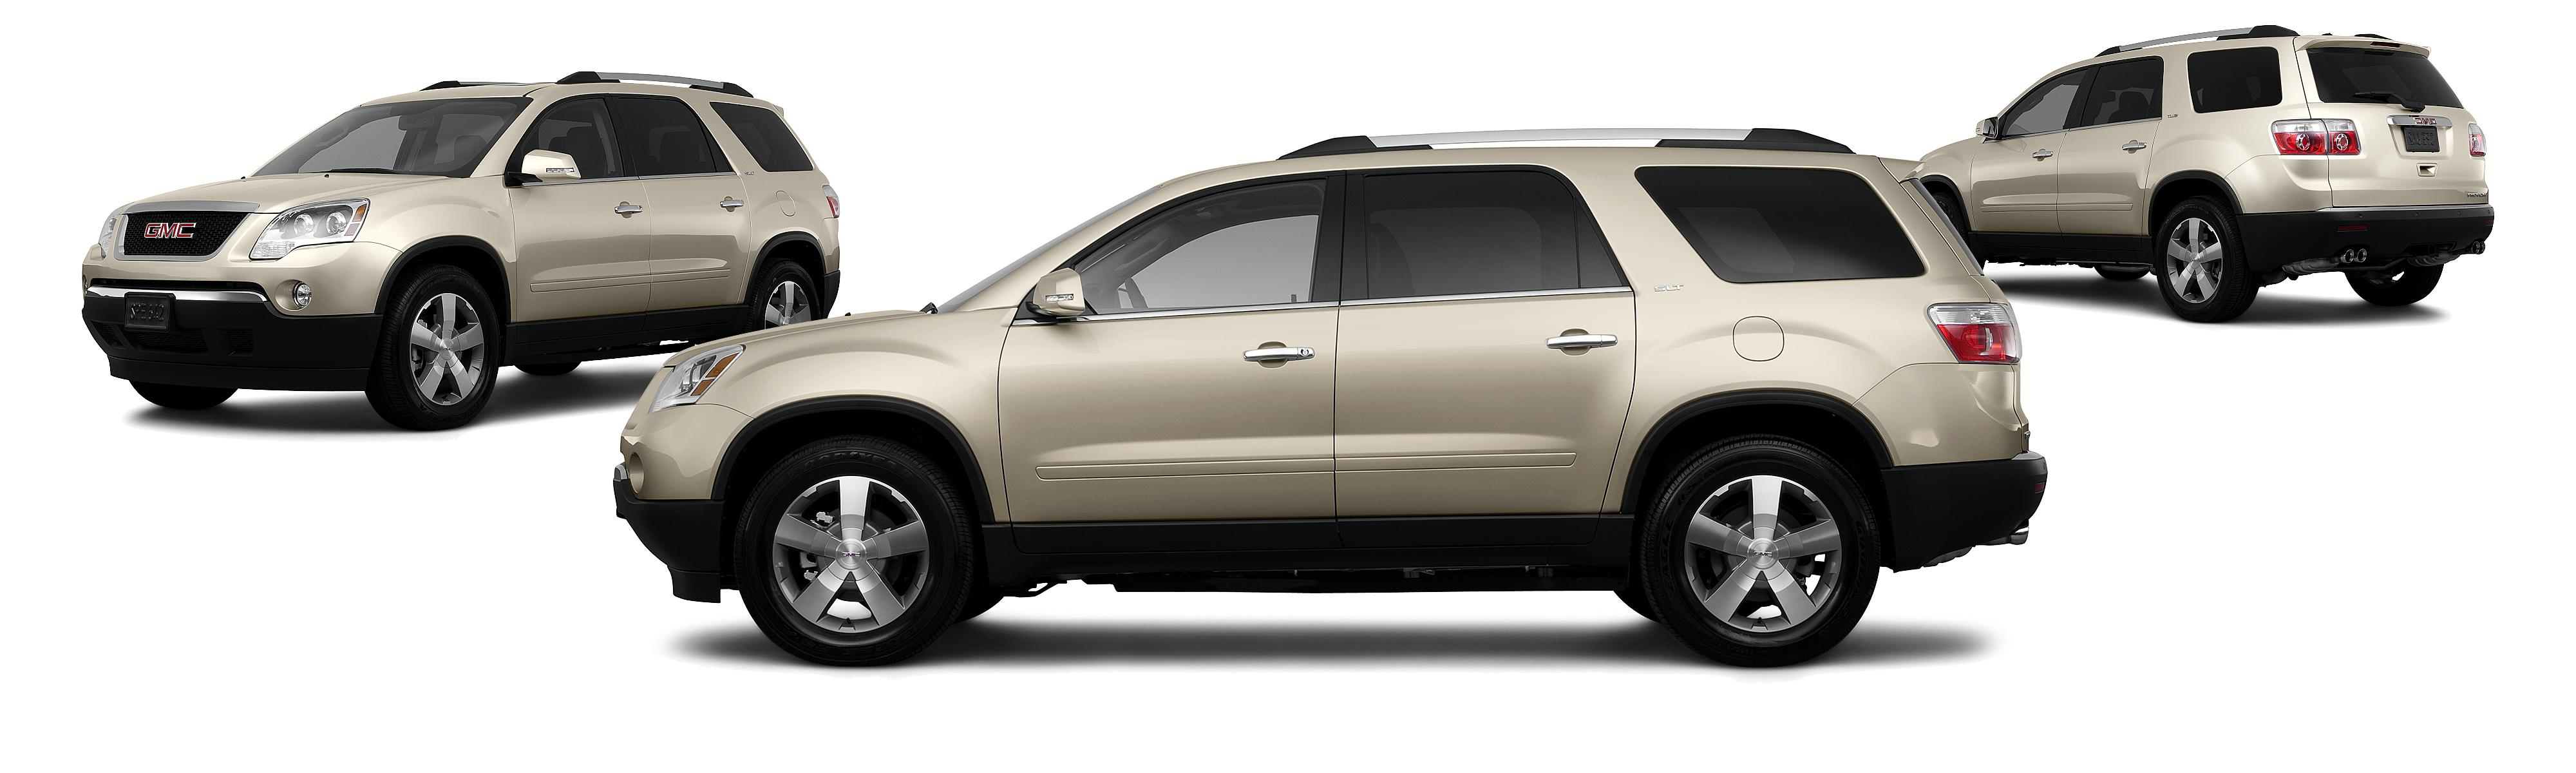 suvs acadia and could cut news black in editions be special them calls terrain paints from the autoevolution gmc production